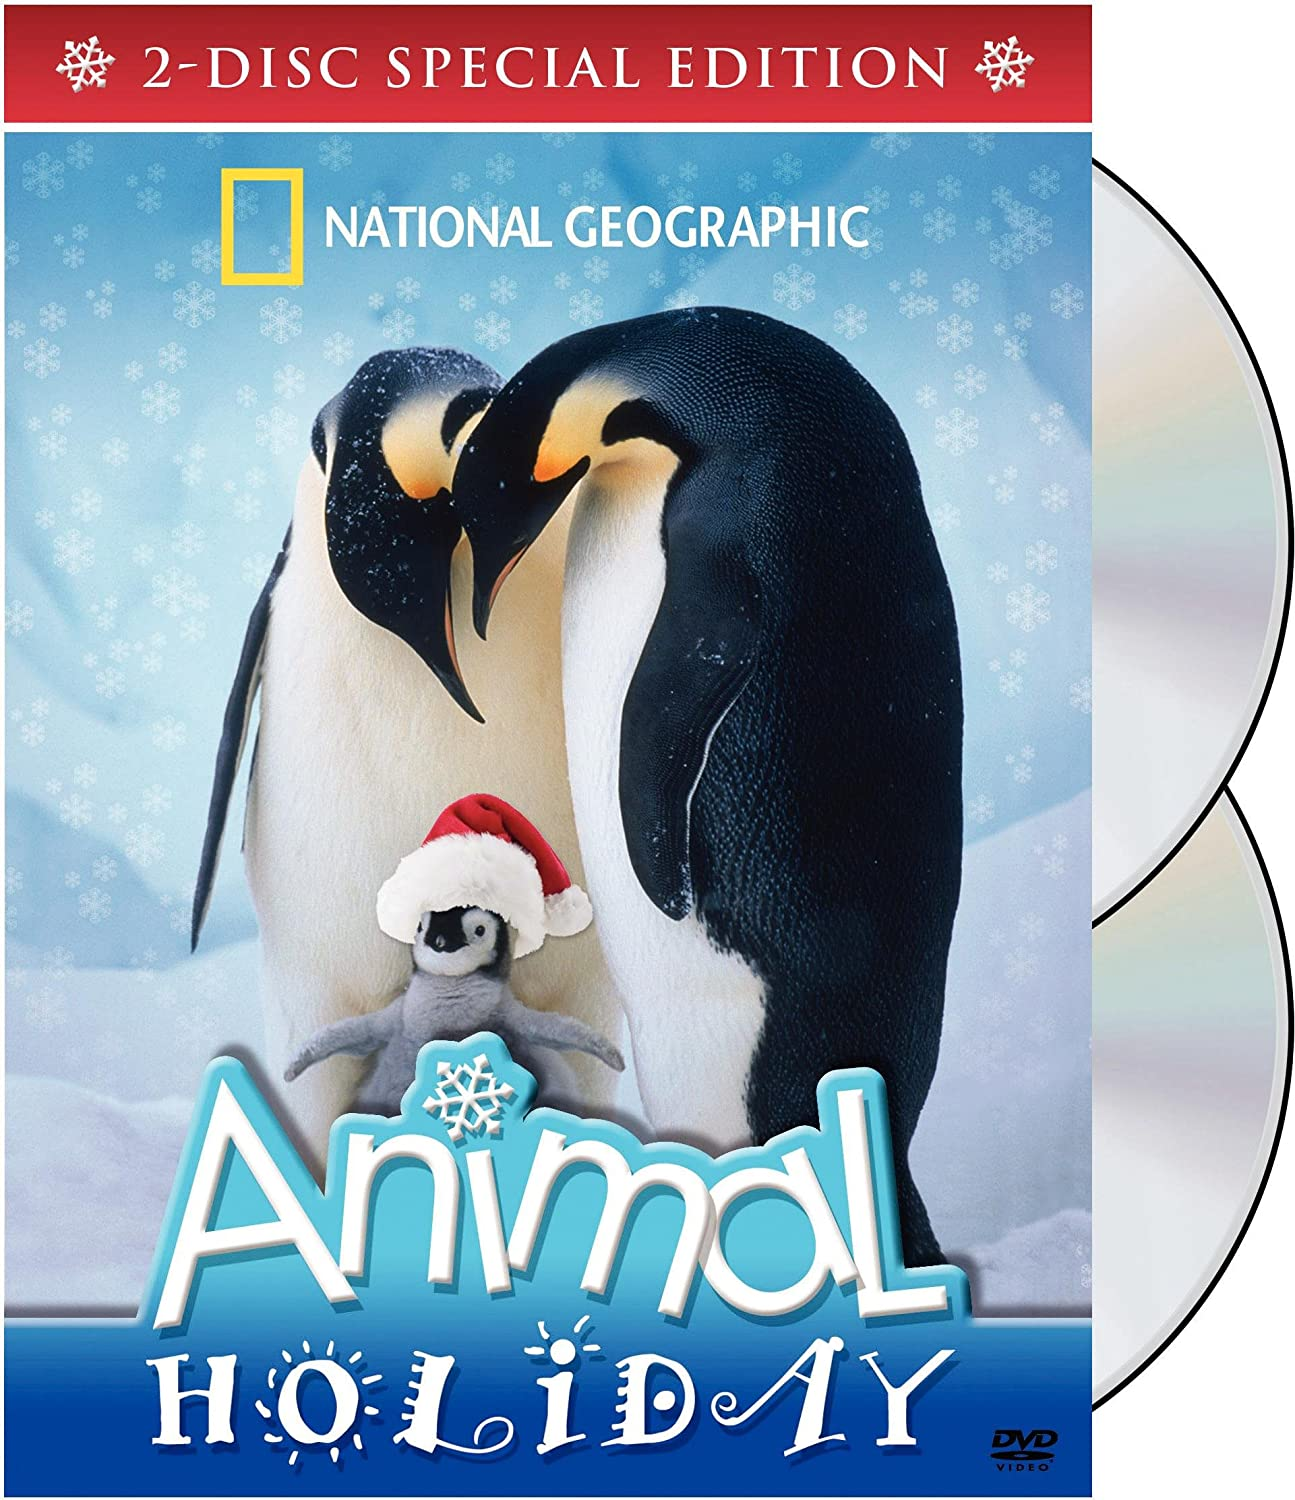 Amazon.com: Animal Holiday: Special Ed.: National Geographic: Movies & TV